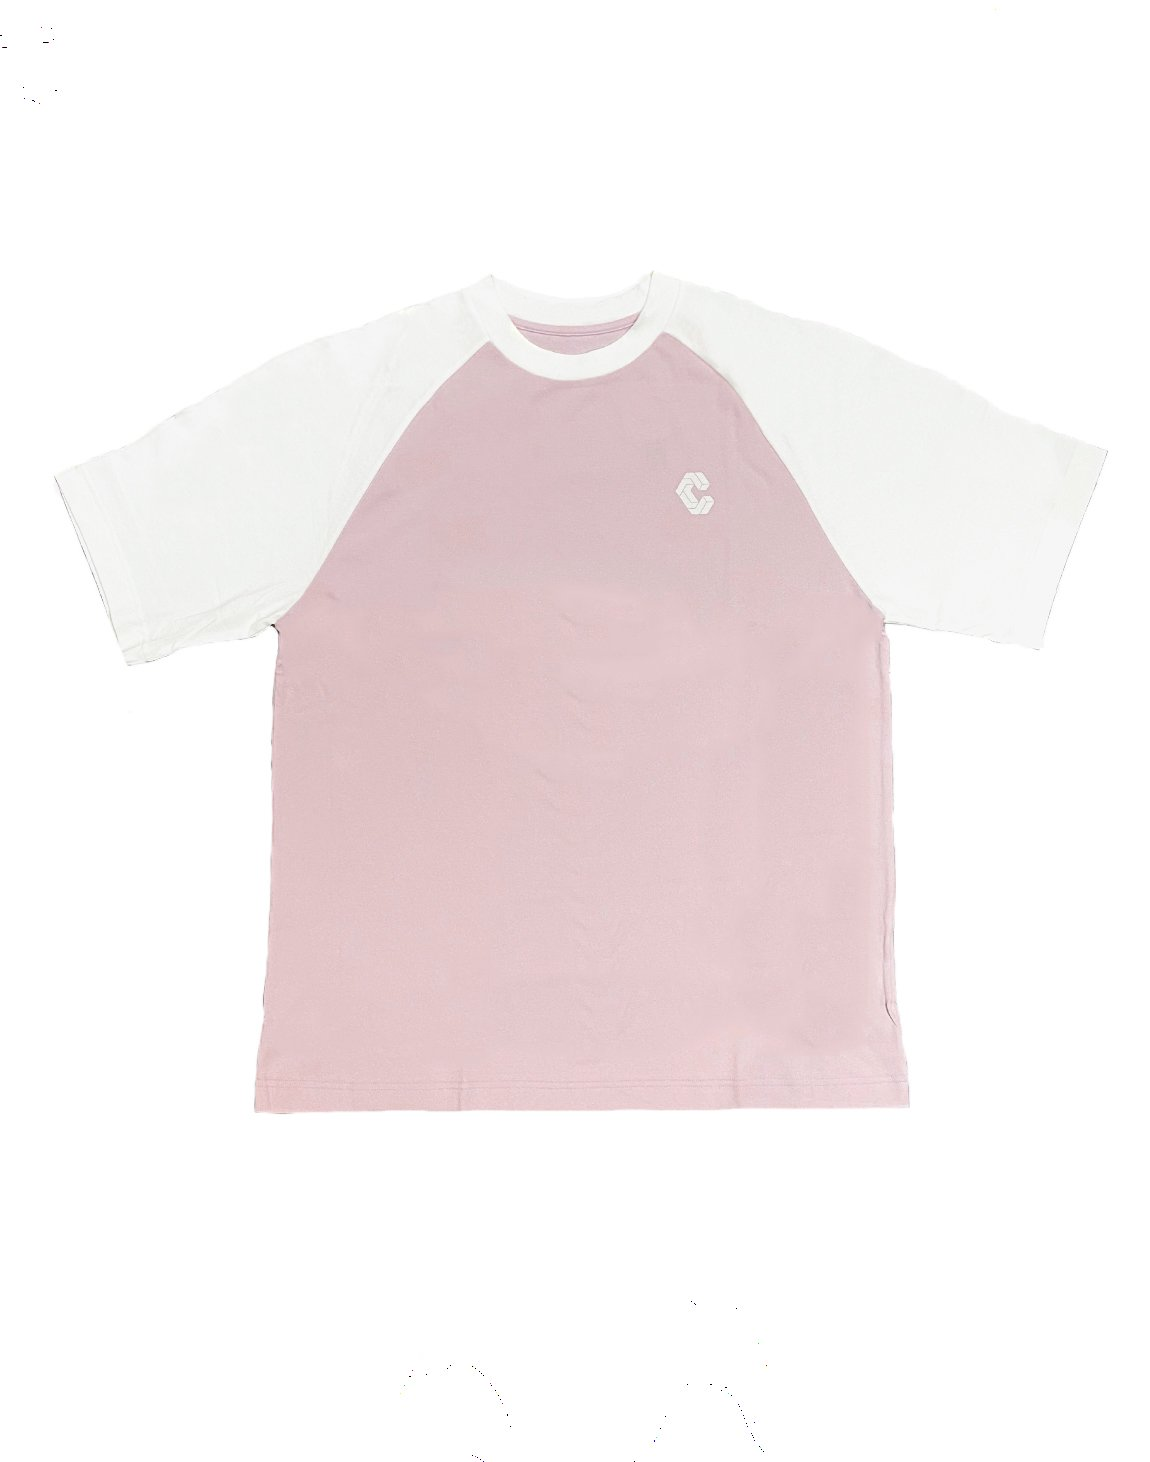 <img class='new_mark_img1' src='https://img.shop-pro.jp/img/new/icons1.gif' style='border:none;display:inline;margin:0px;padding:0px;width:auto;' />CRONOS BACK LOGO OVERSIZE T-SHIRTS【PINK】